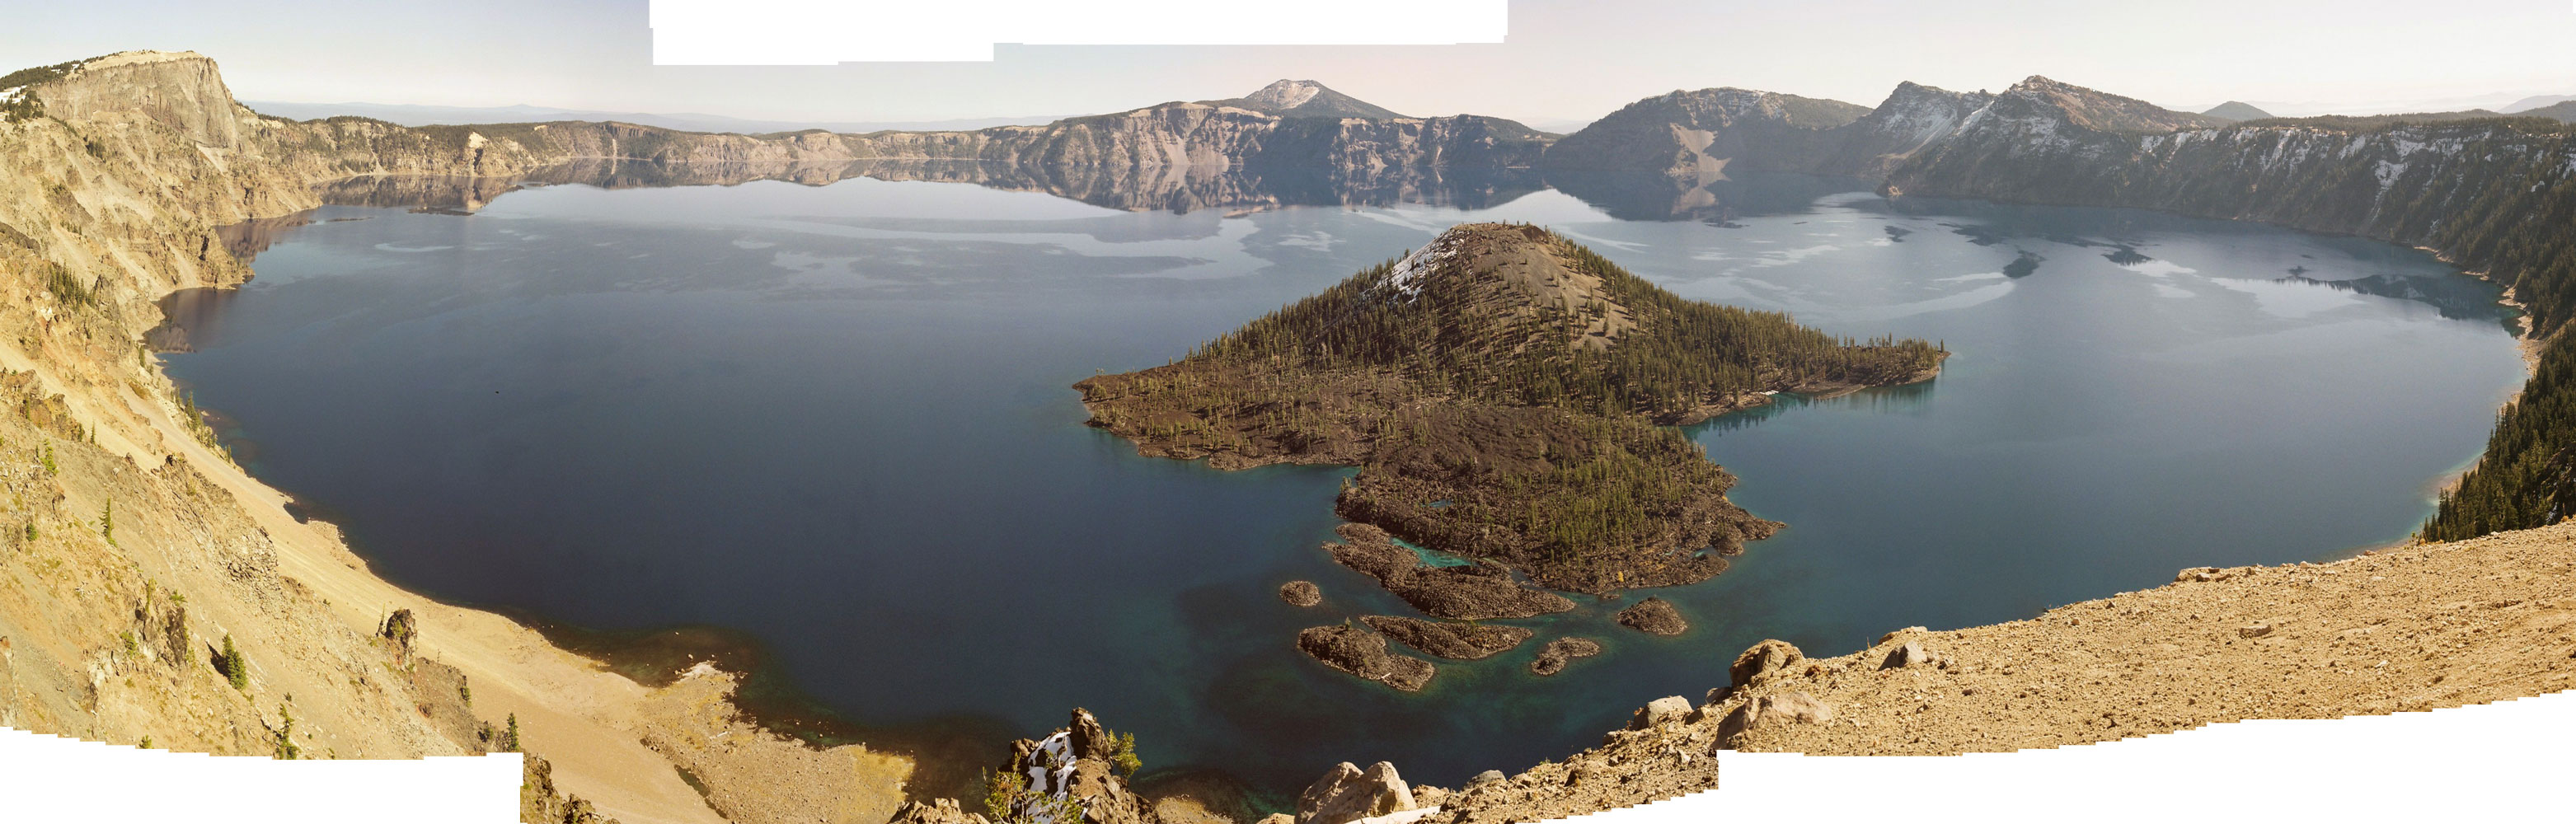 CraterLake-photomerge